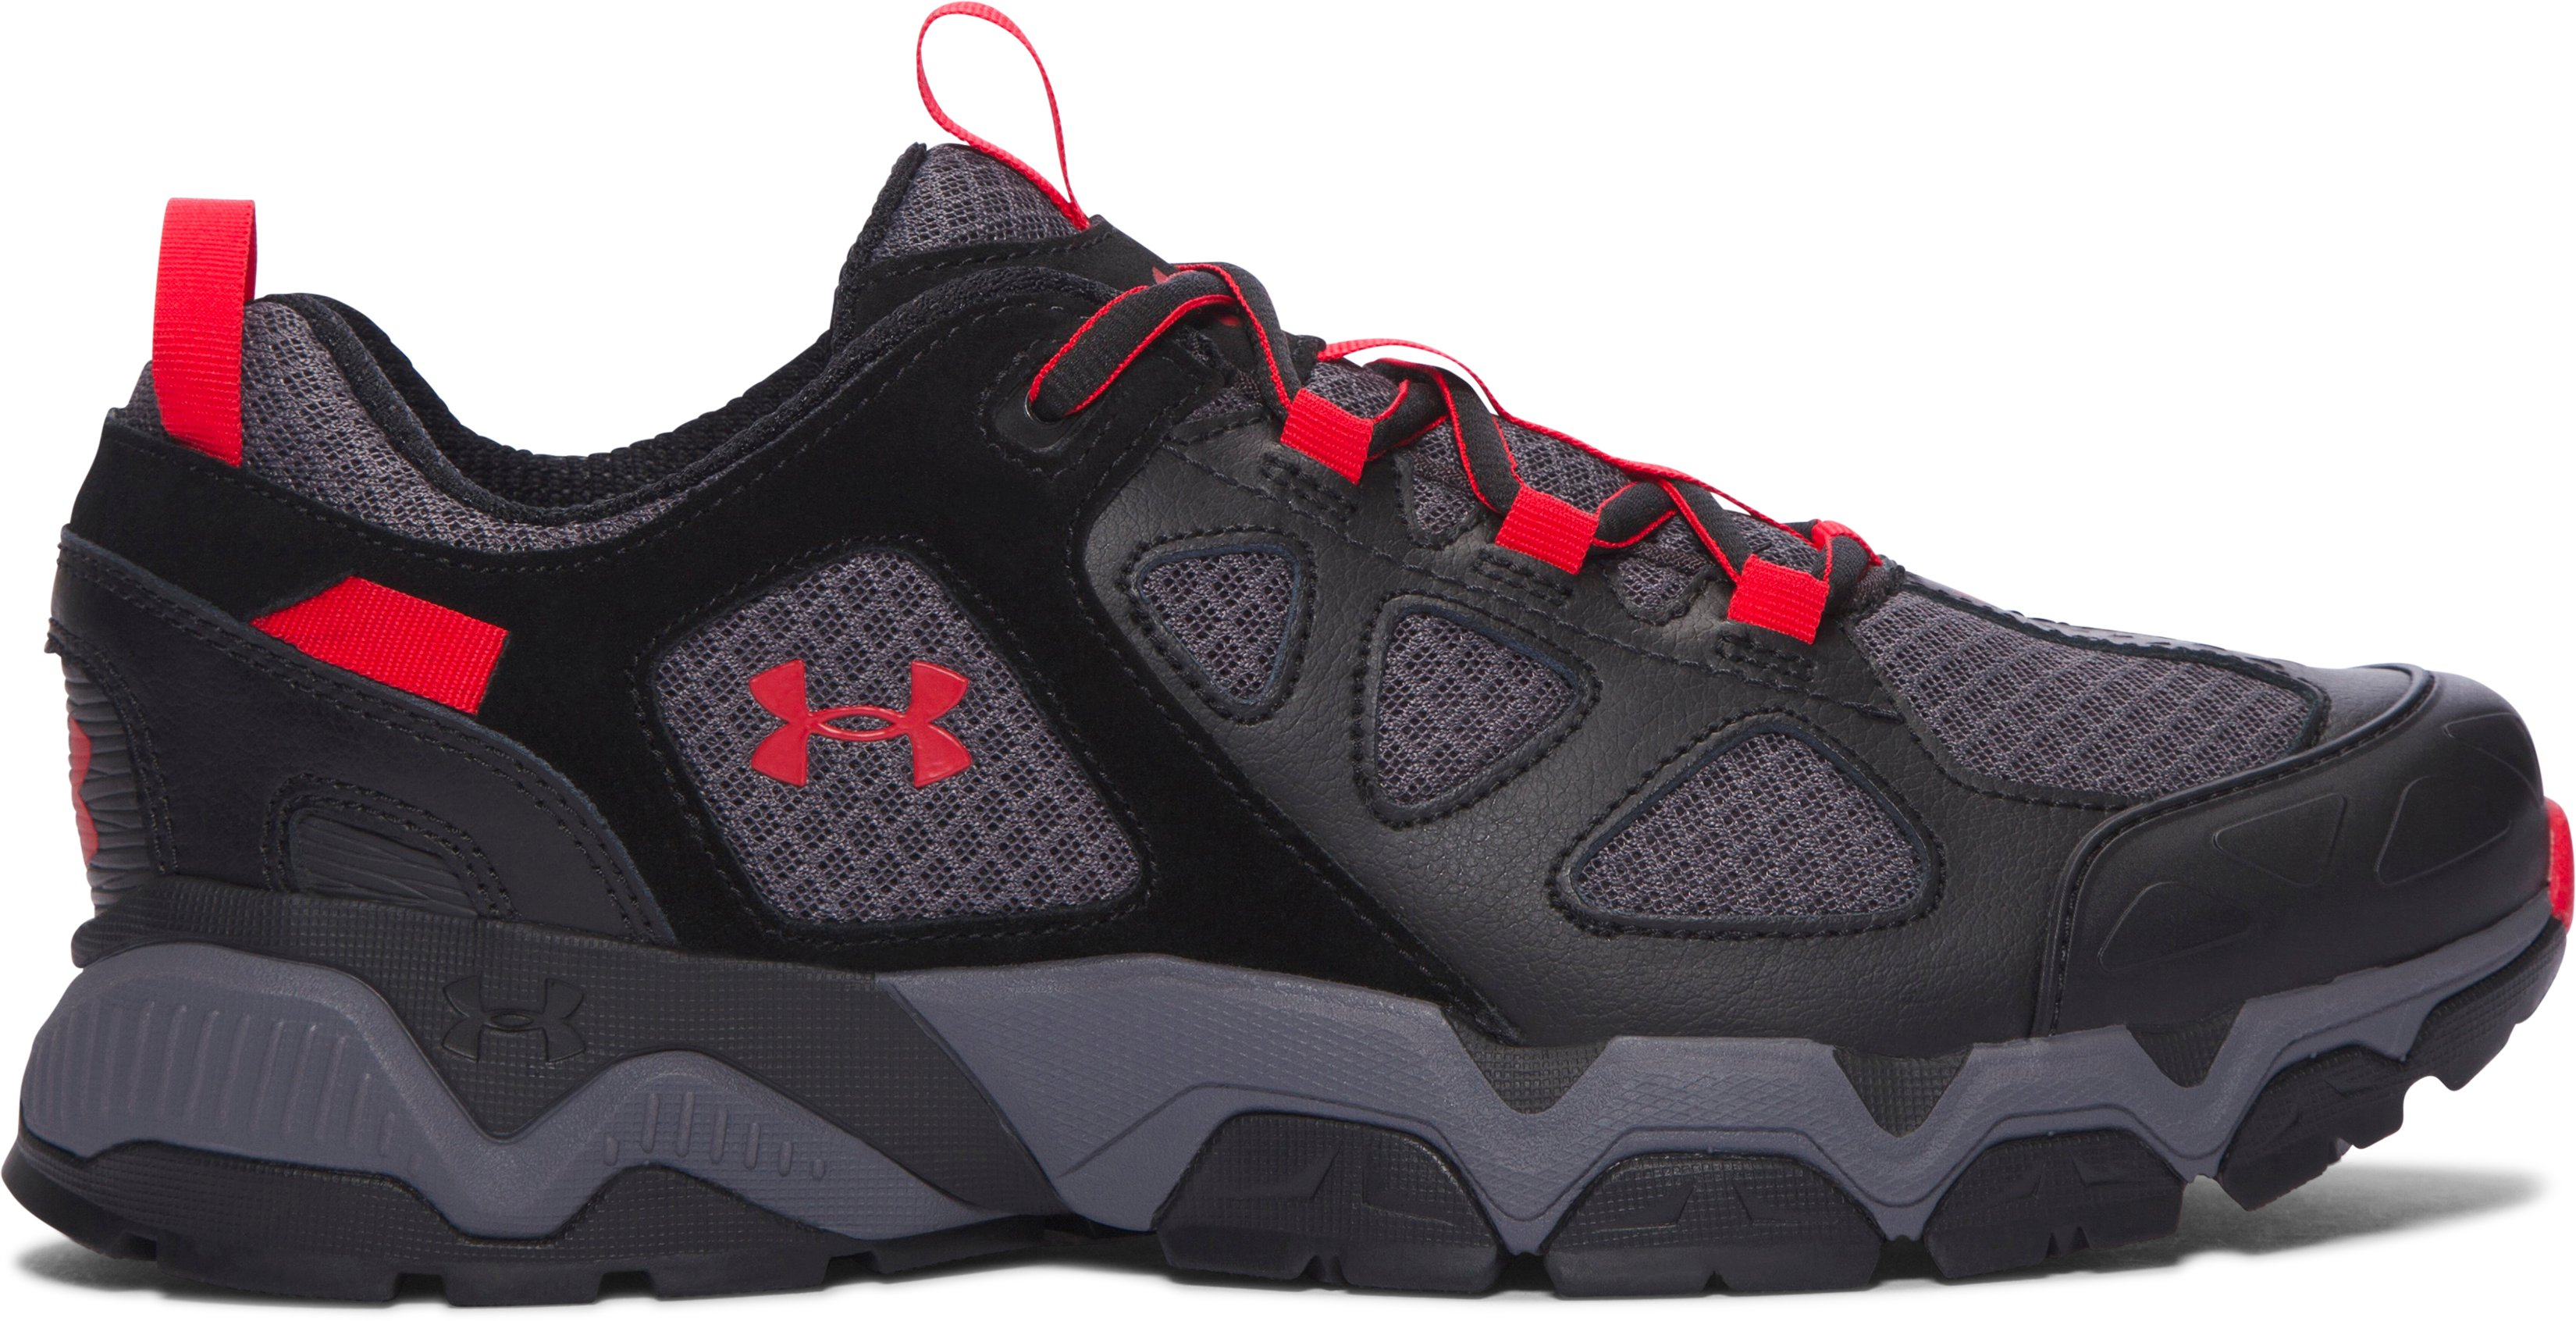 Men's UA Mirage 3.0 Hiking Shoes, Black